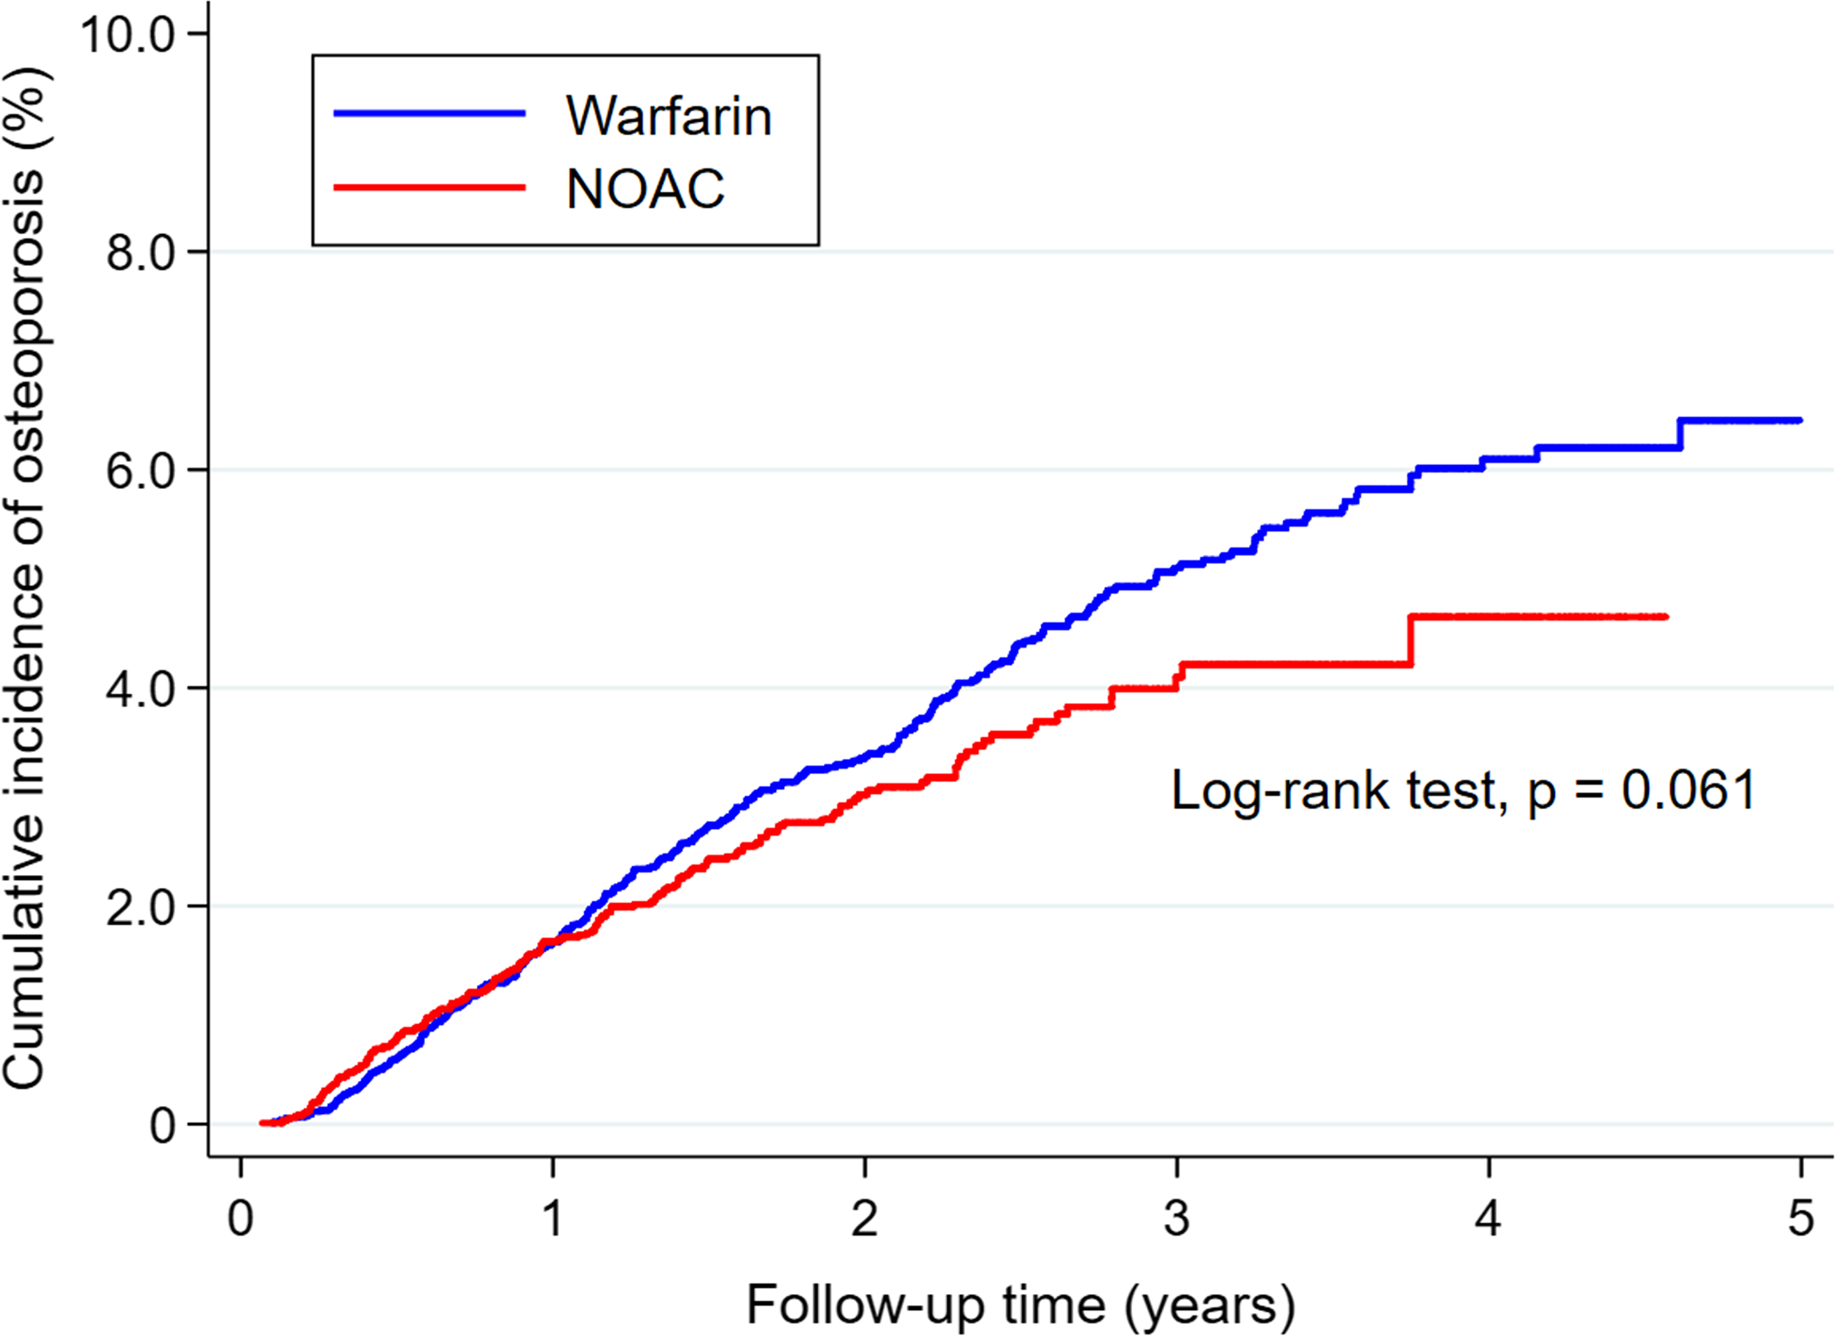 Risk Of Osteoporosis In Patients With Atrial Fibrillation Using Non Vitamin K Antagonist Oral Anticoagulants Or Warfarin Journal Of The American Heart Association